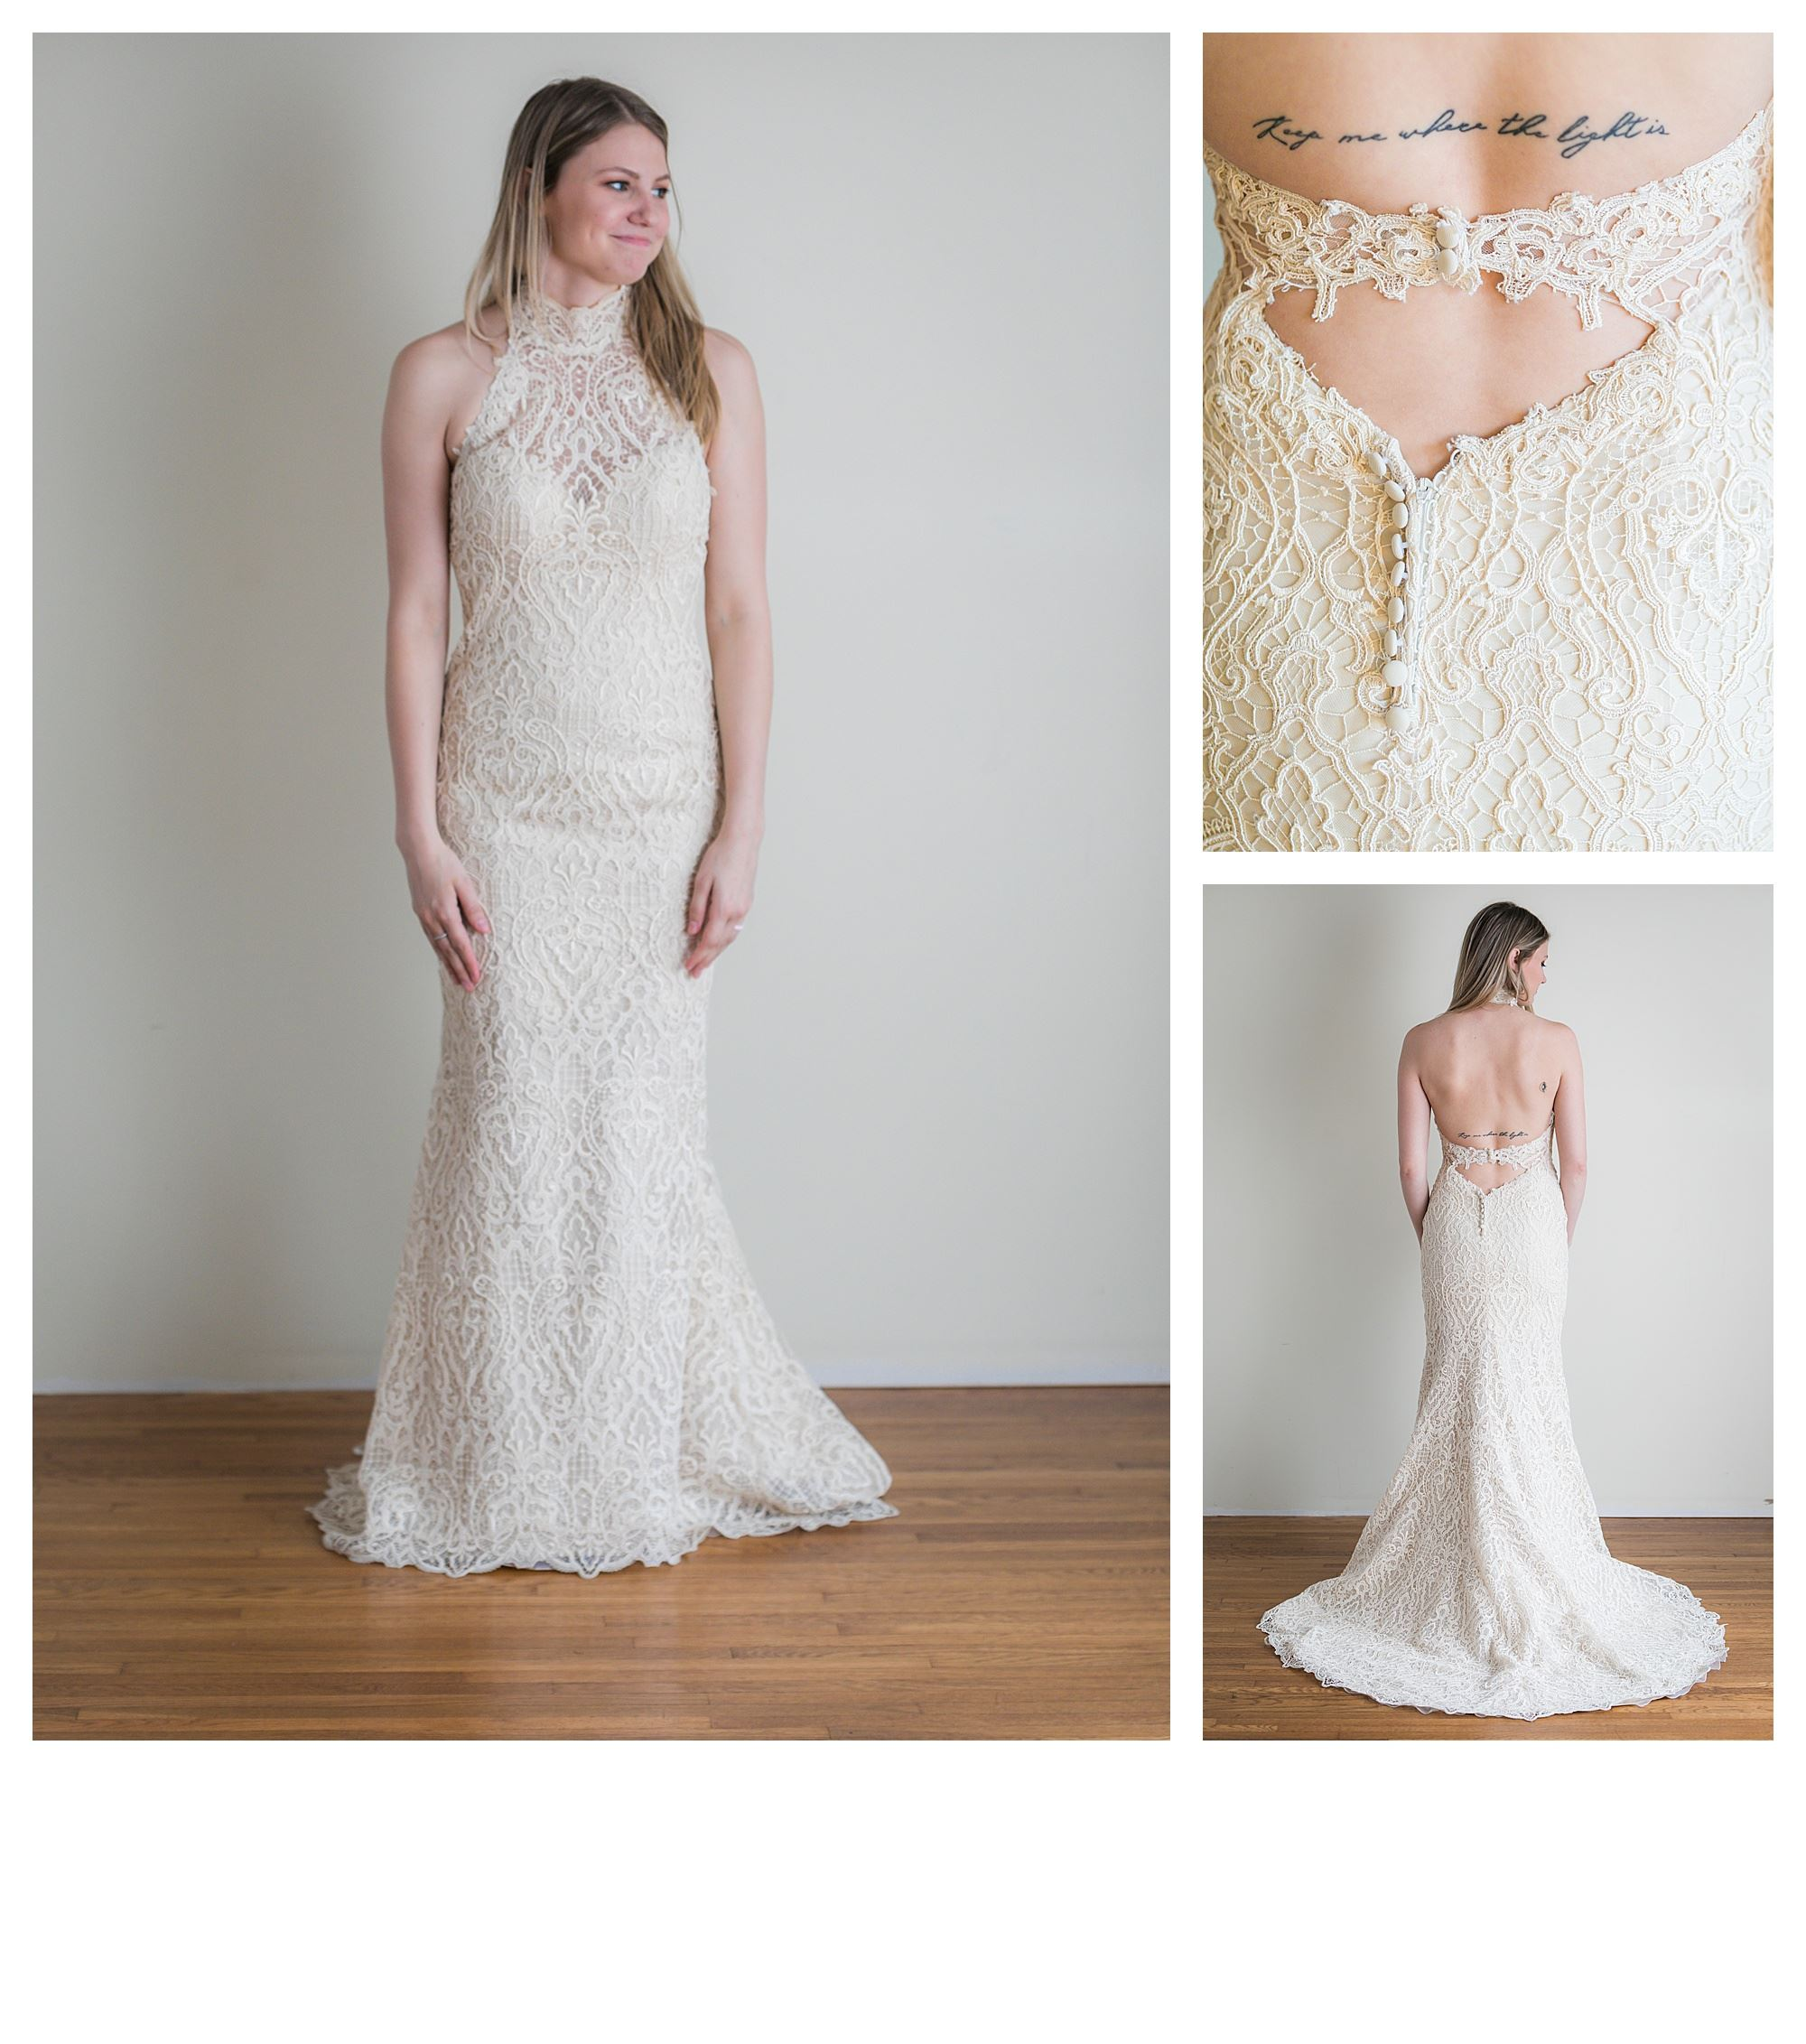 Sabine - Size 6 - Lt. Gold - Originally priced $3099 - Sample box price $1999